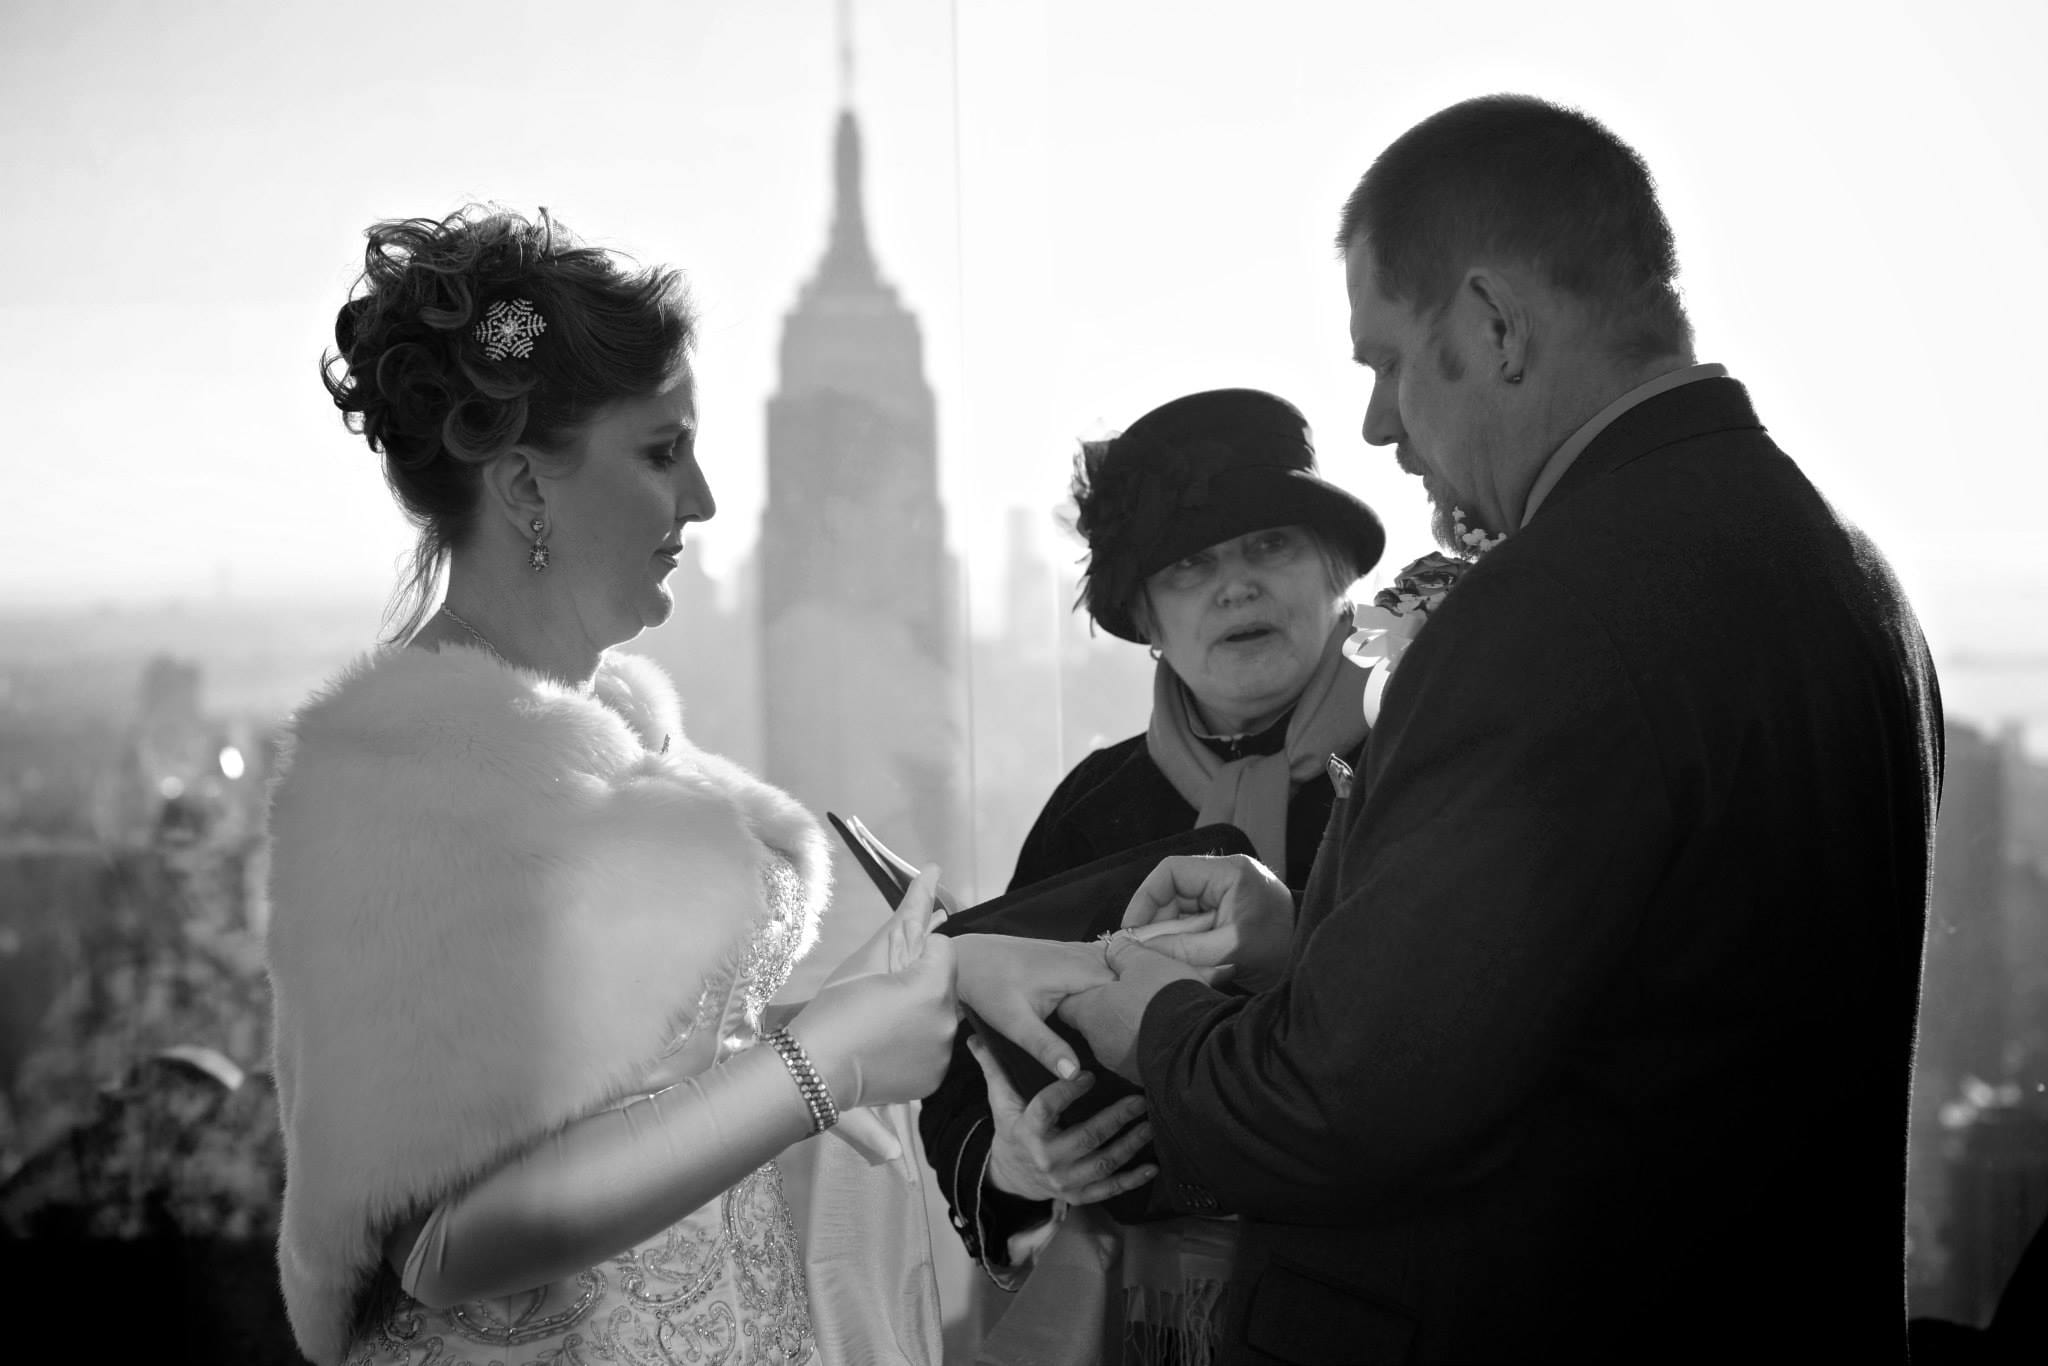 Top of the Rock Wedding - Rockefeller Center Wedding